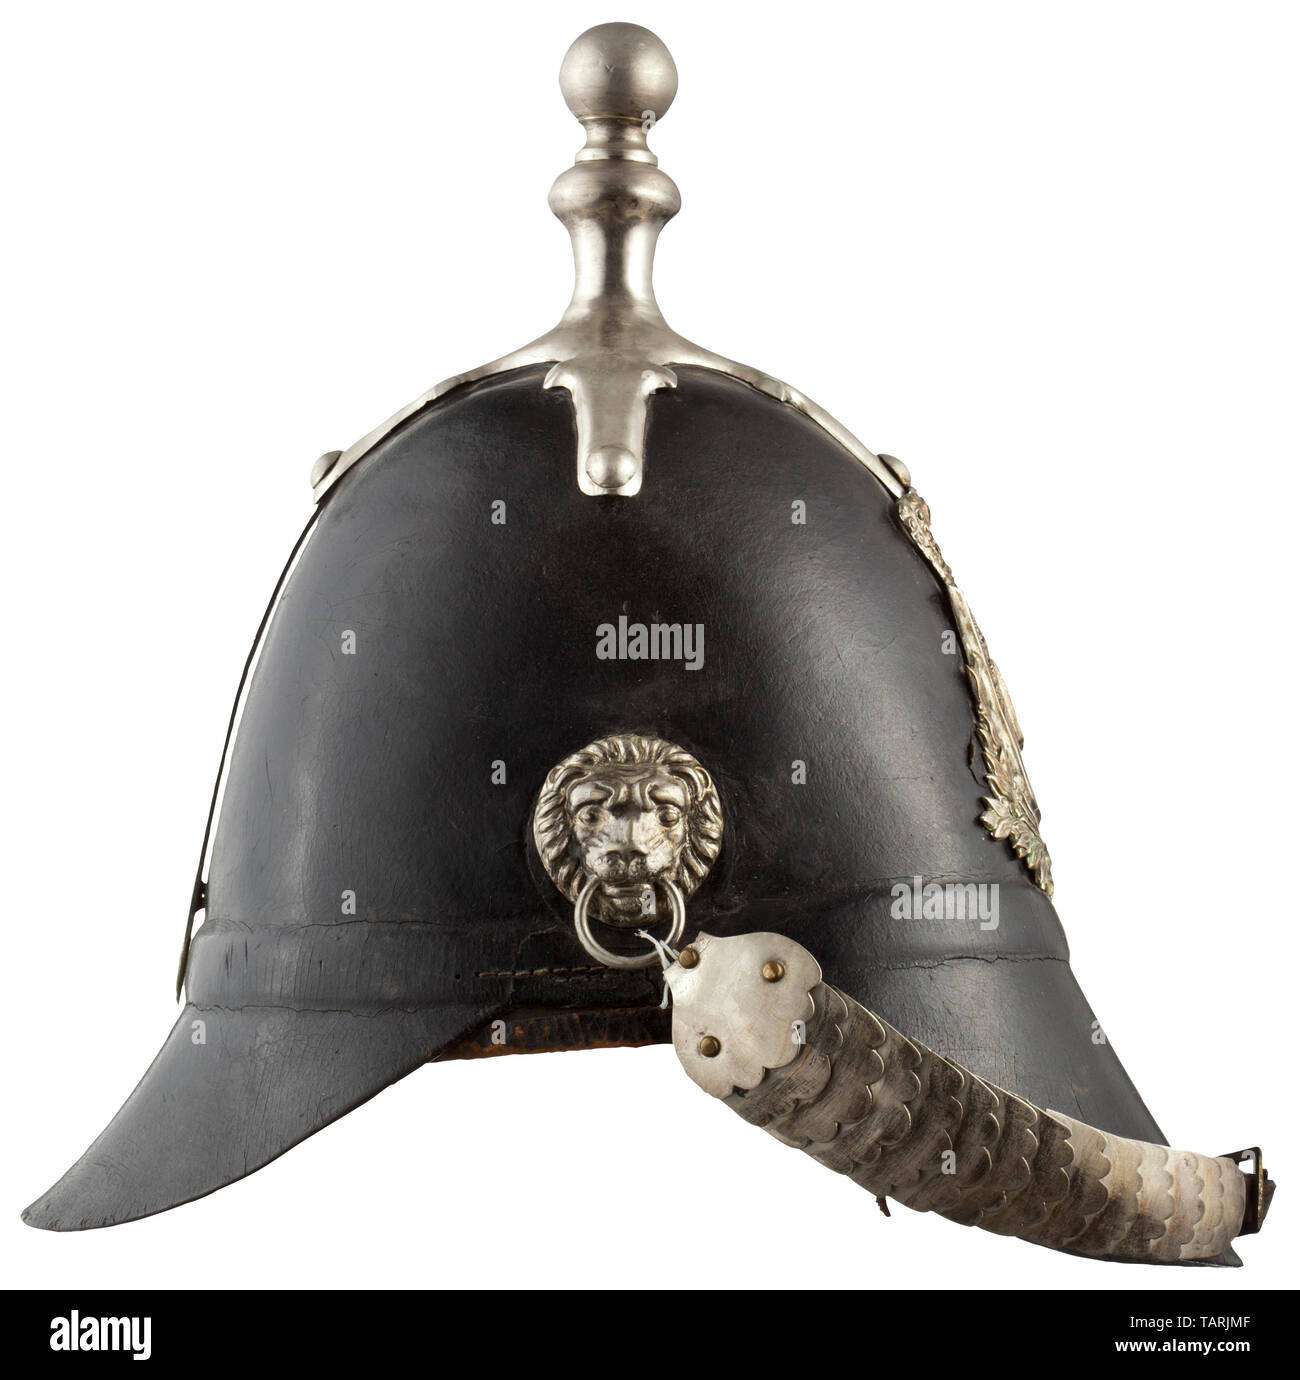 Body armour, helmets, model 1848 for Bavarian Landwehr (militia) infantry, leather with silver fittings, Editorial-Use-Only - Stock Image